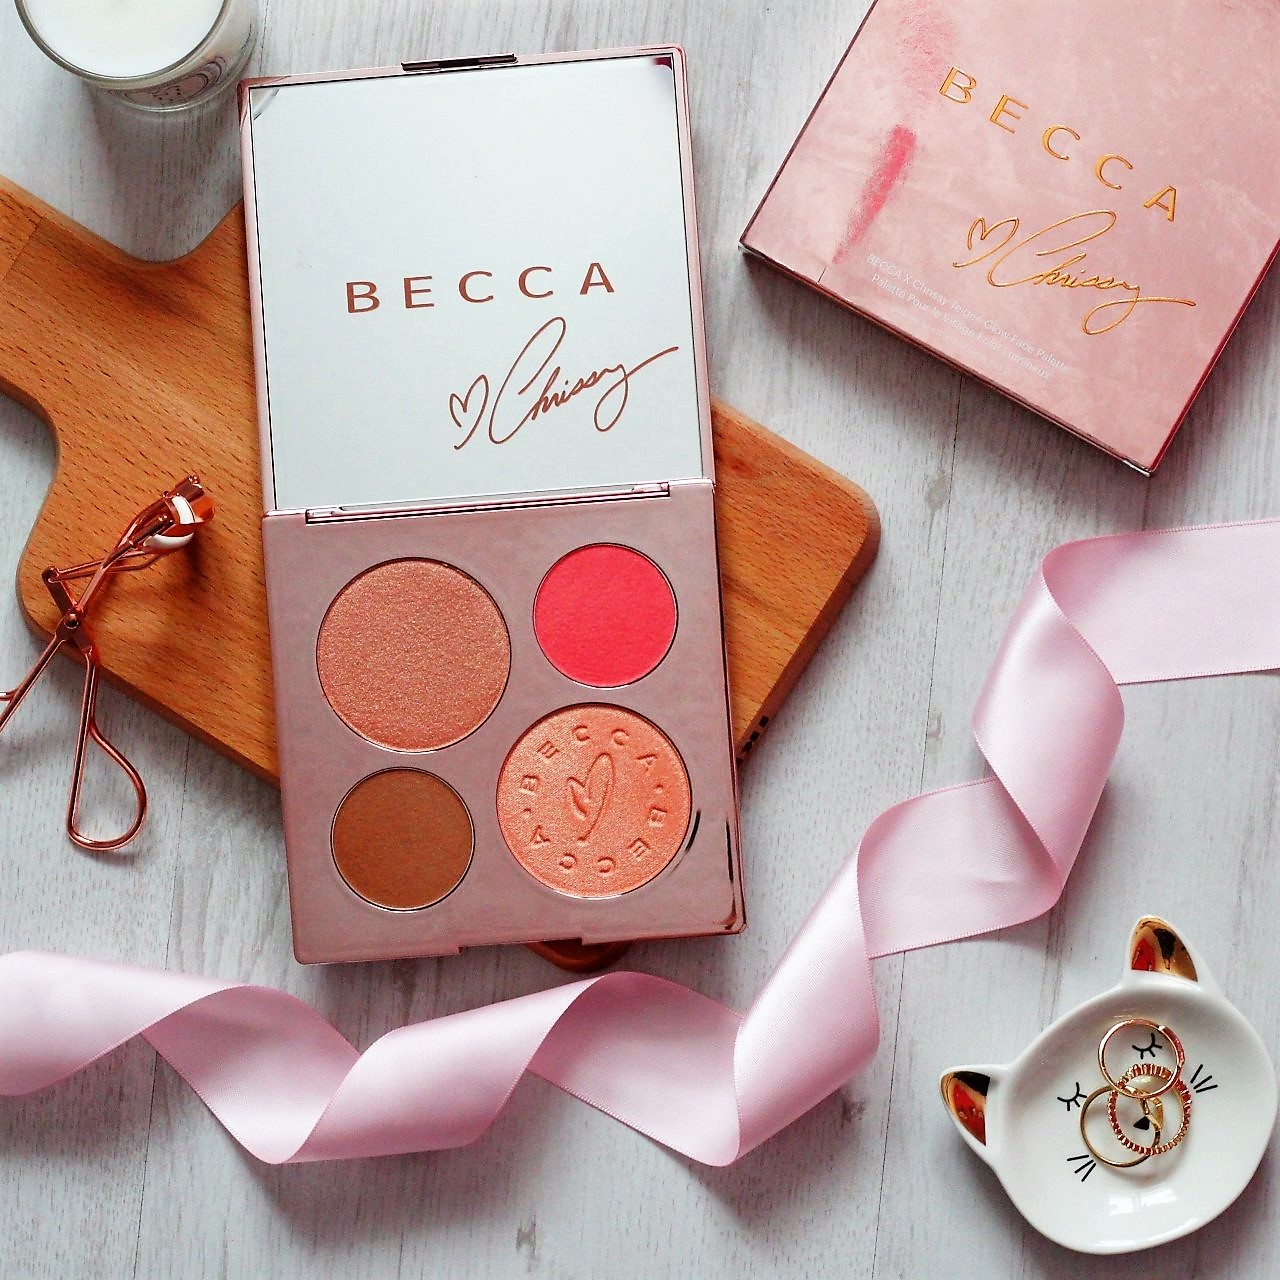 Becca x Chrissy Teigan Glow Face Palette Review and Swatches 1 (2).jpeg